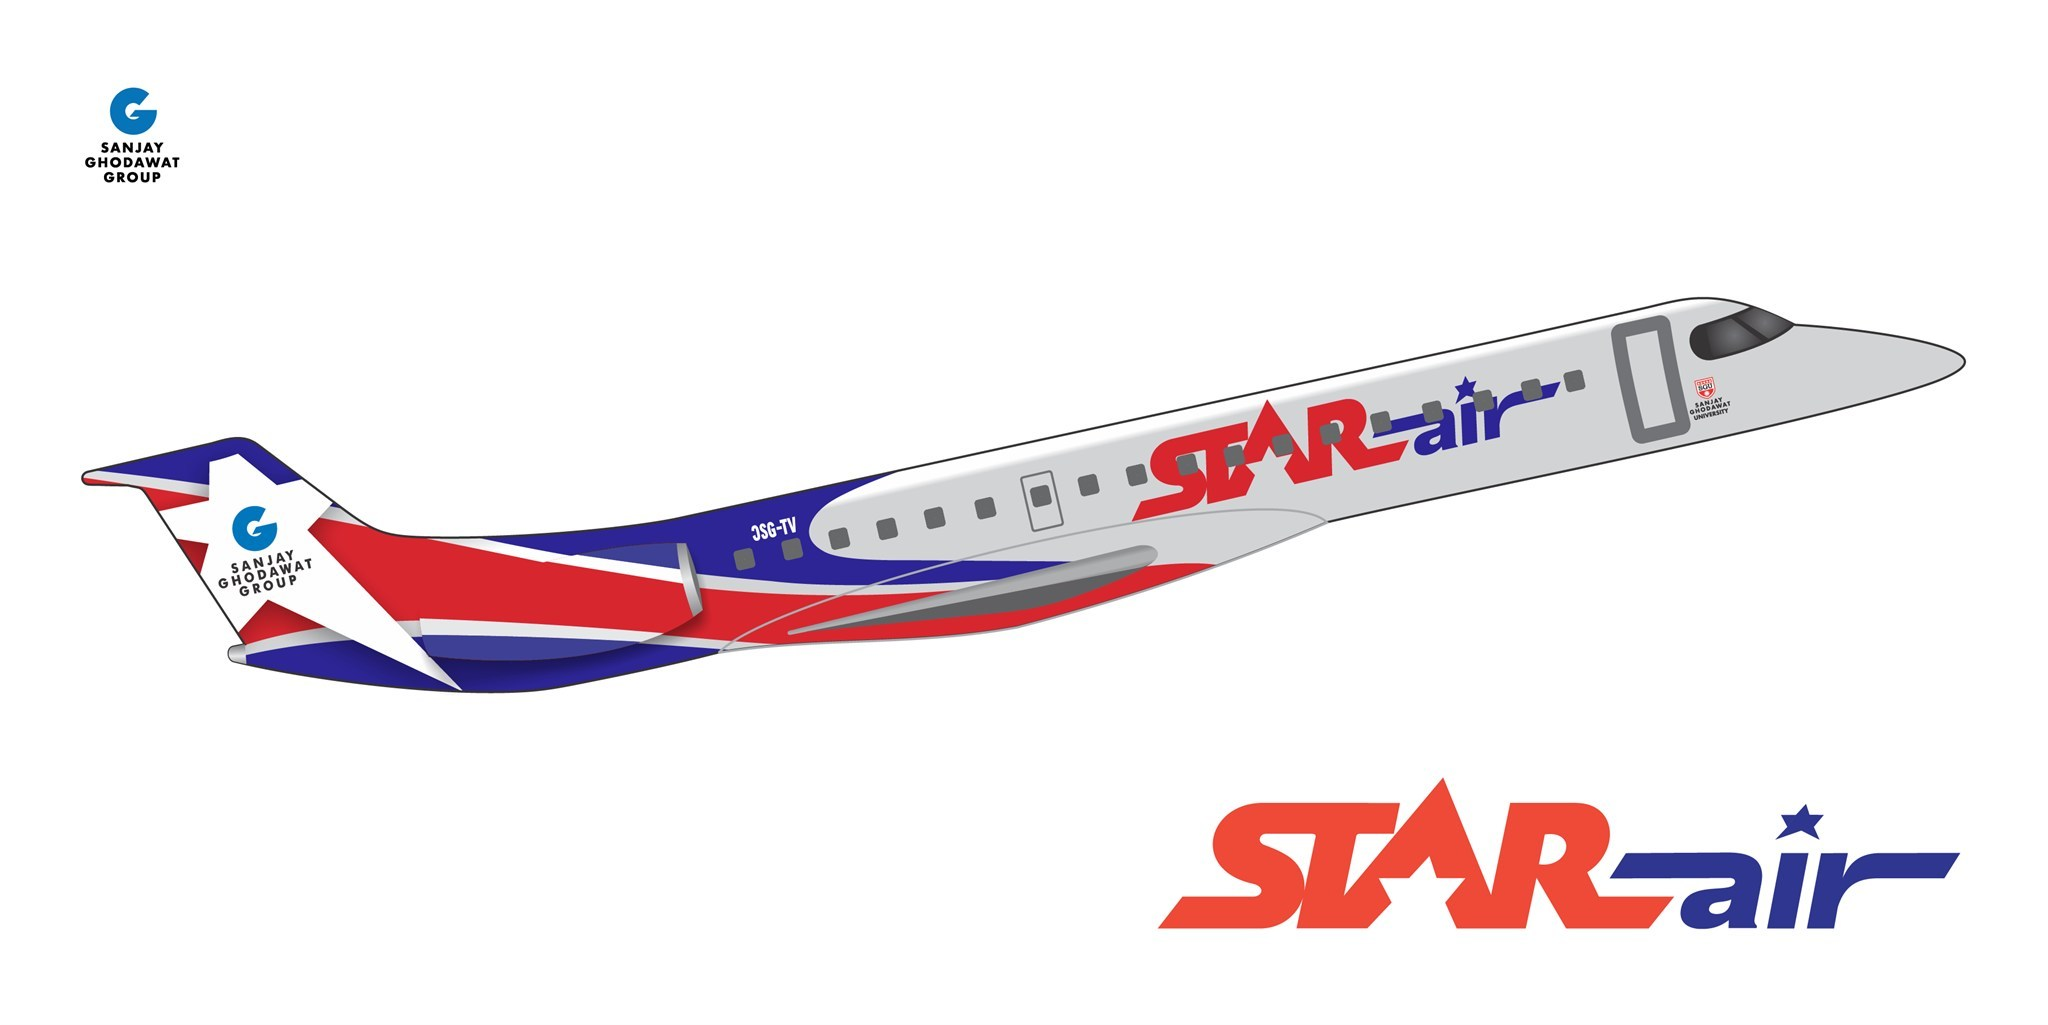 Star Air A New Airline By Sanjay Ghodawat Group Is All Set For